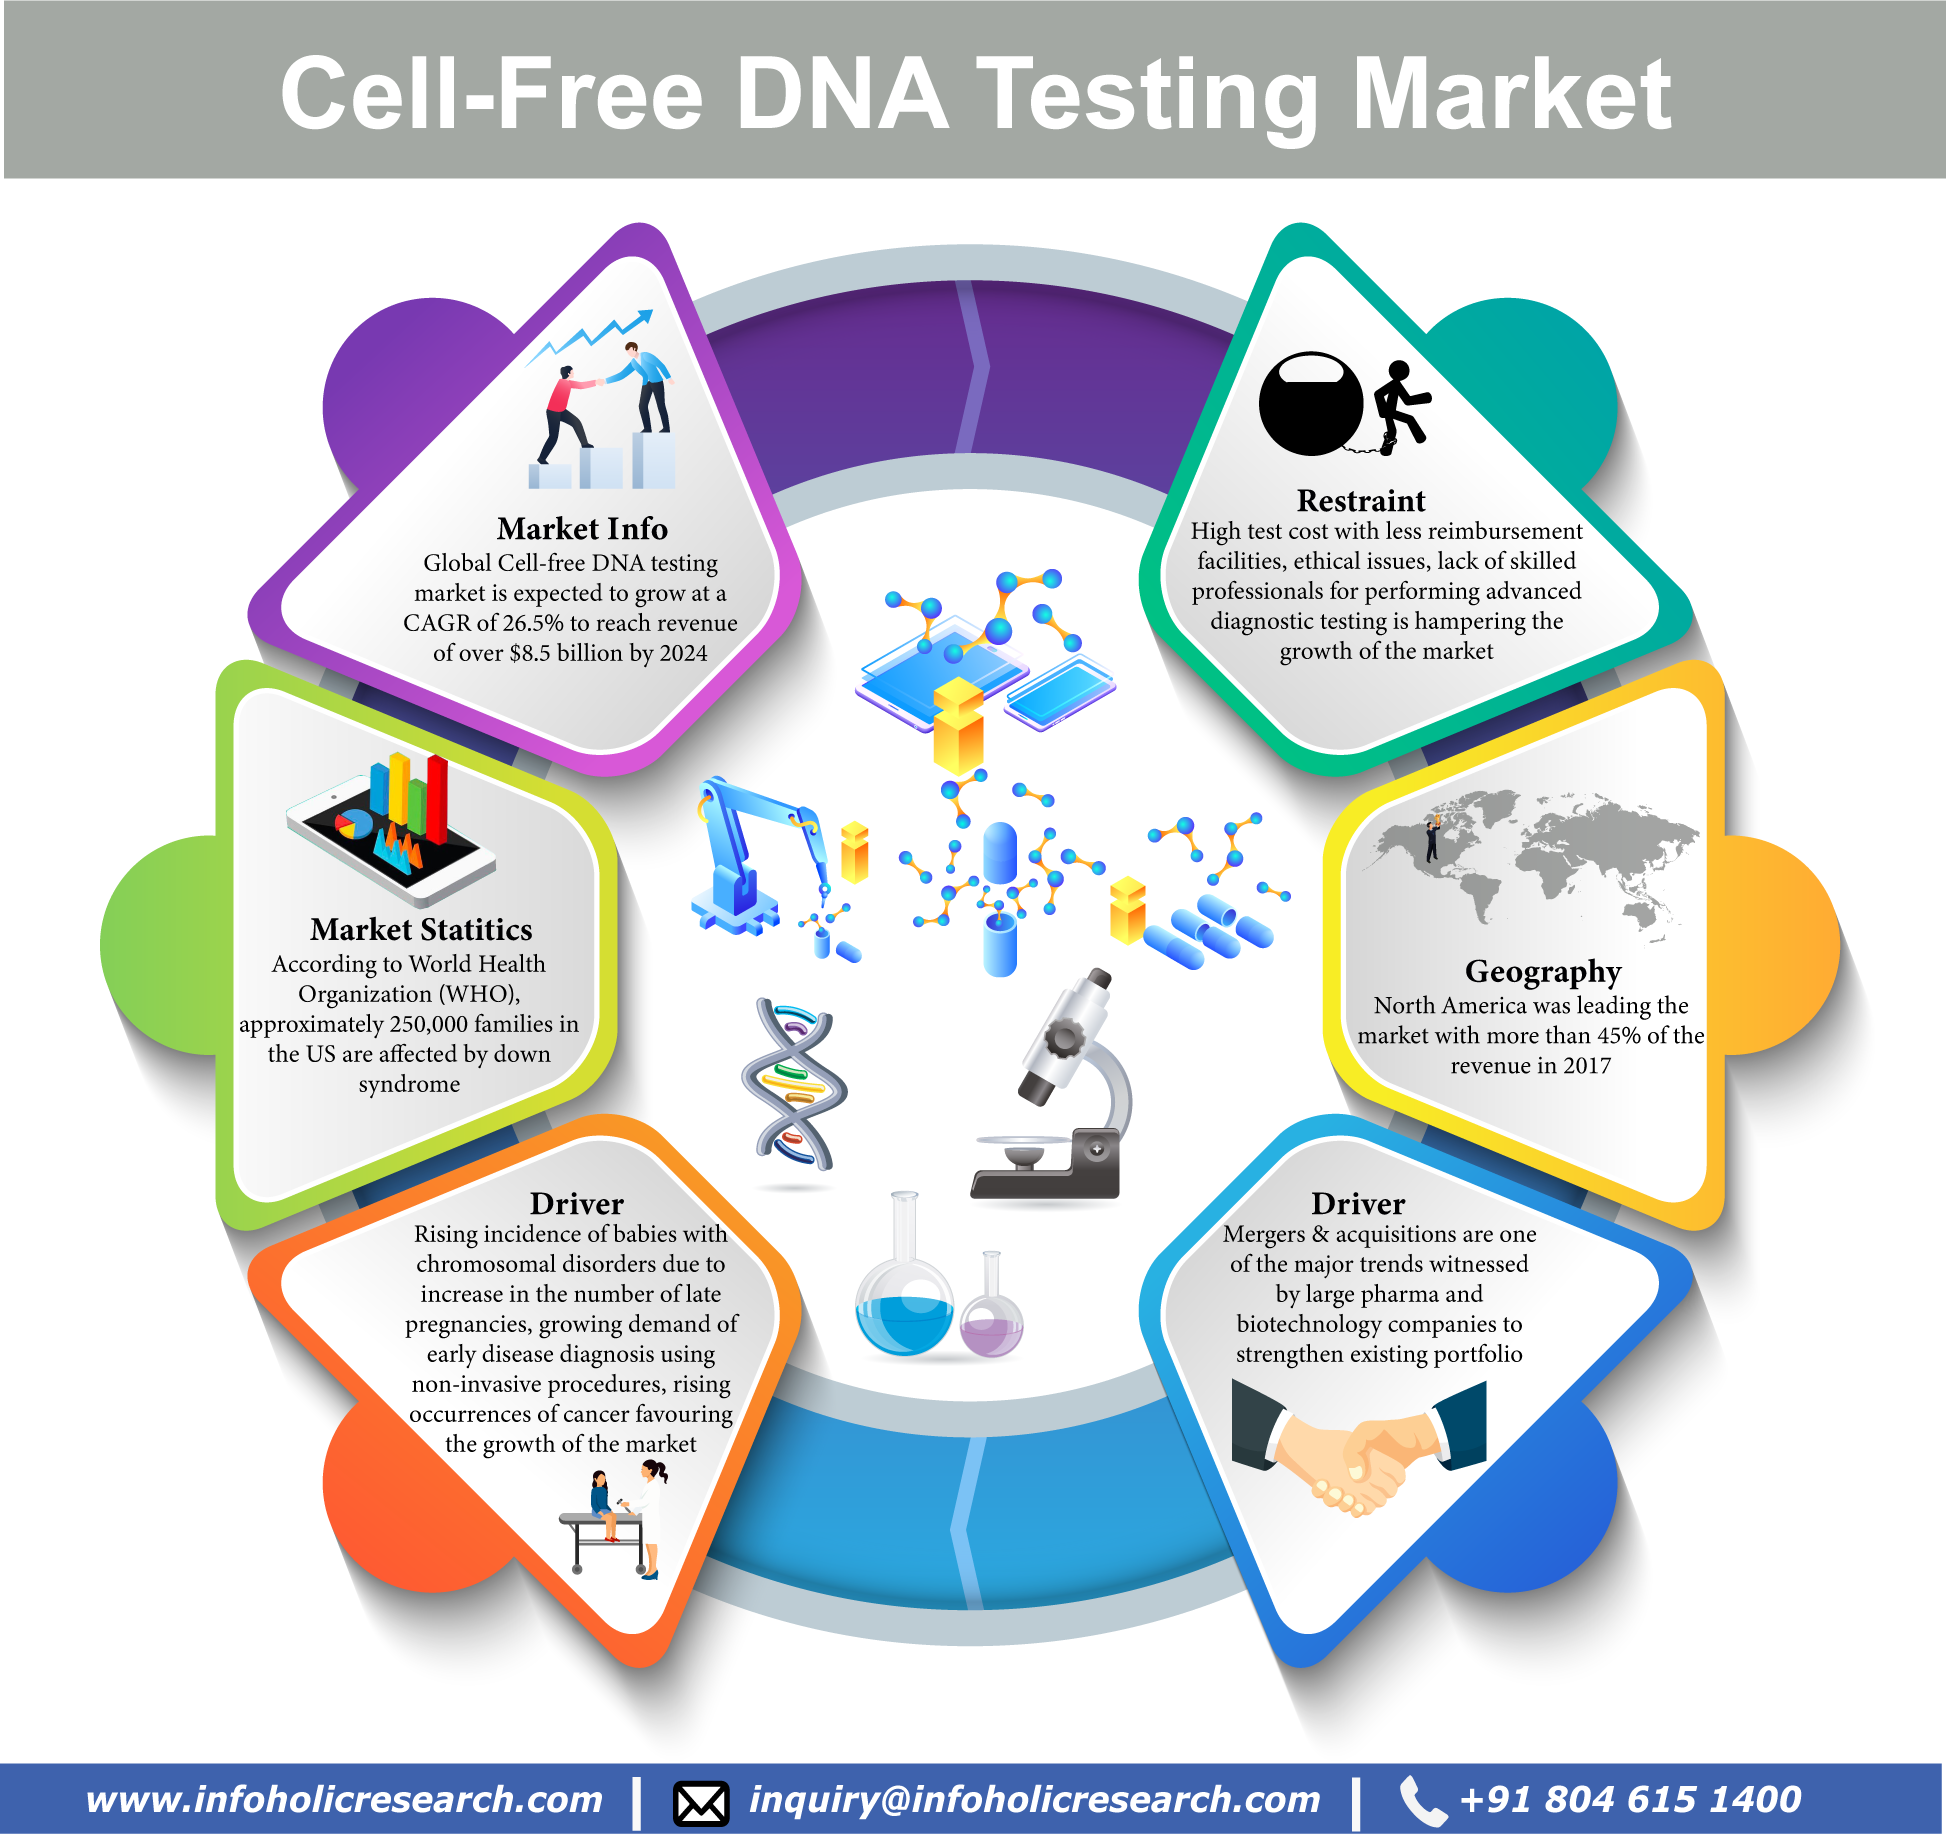 Cell-free DNA Testing Market Report 2017–2023 | Healthcare Market